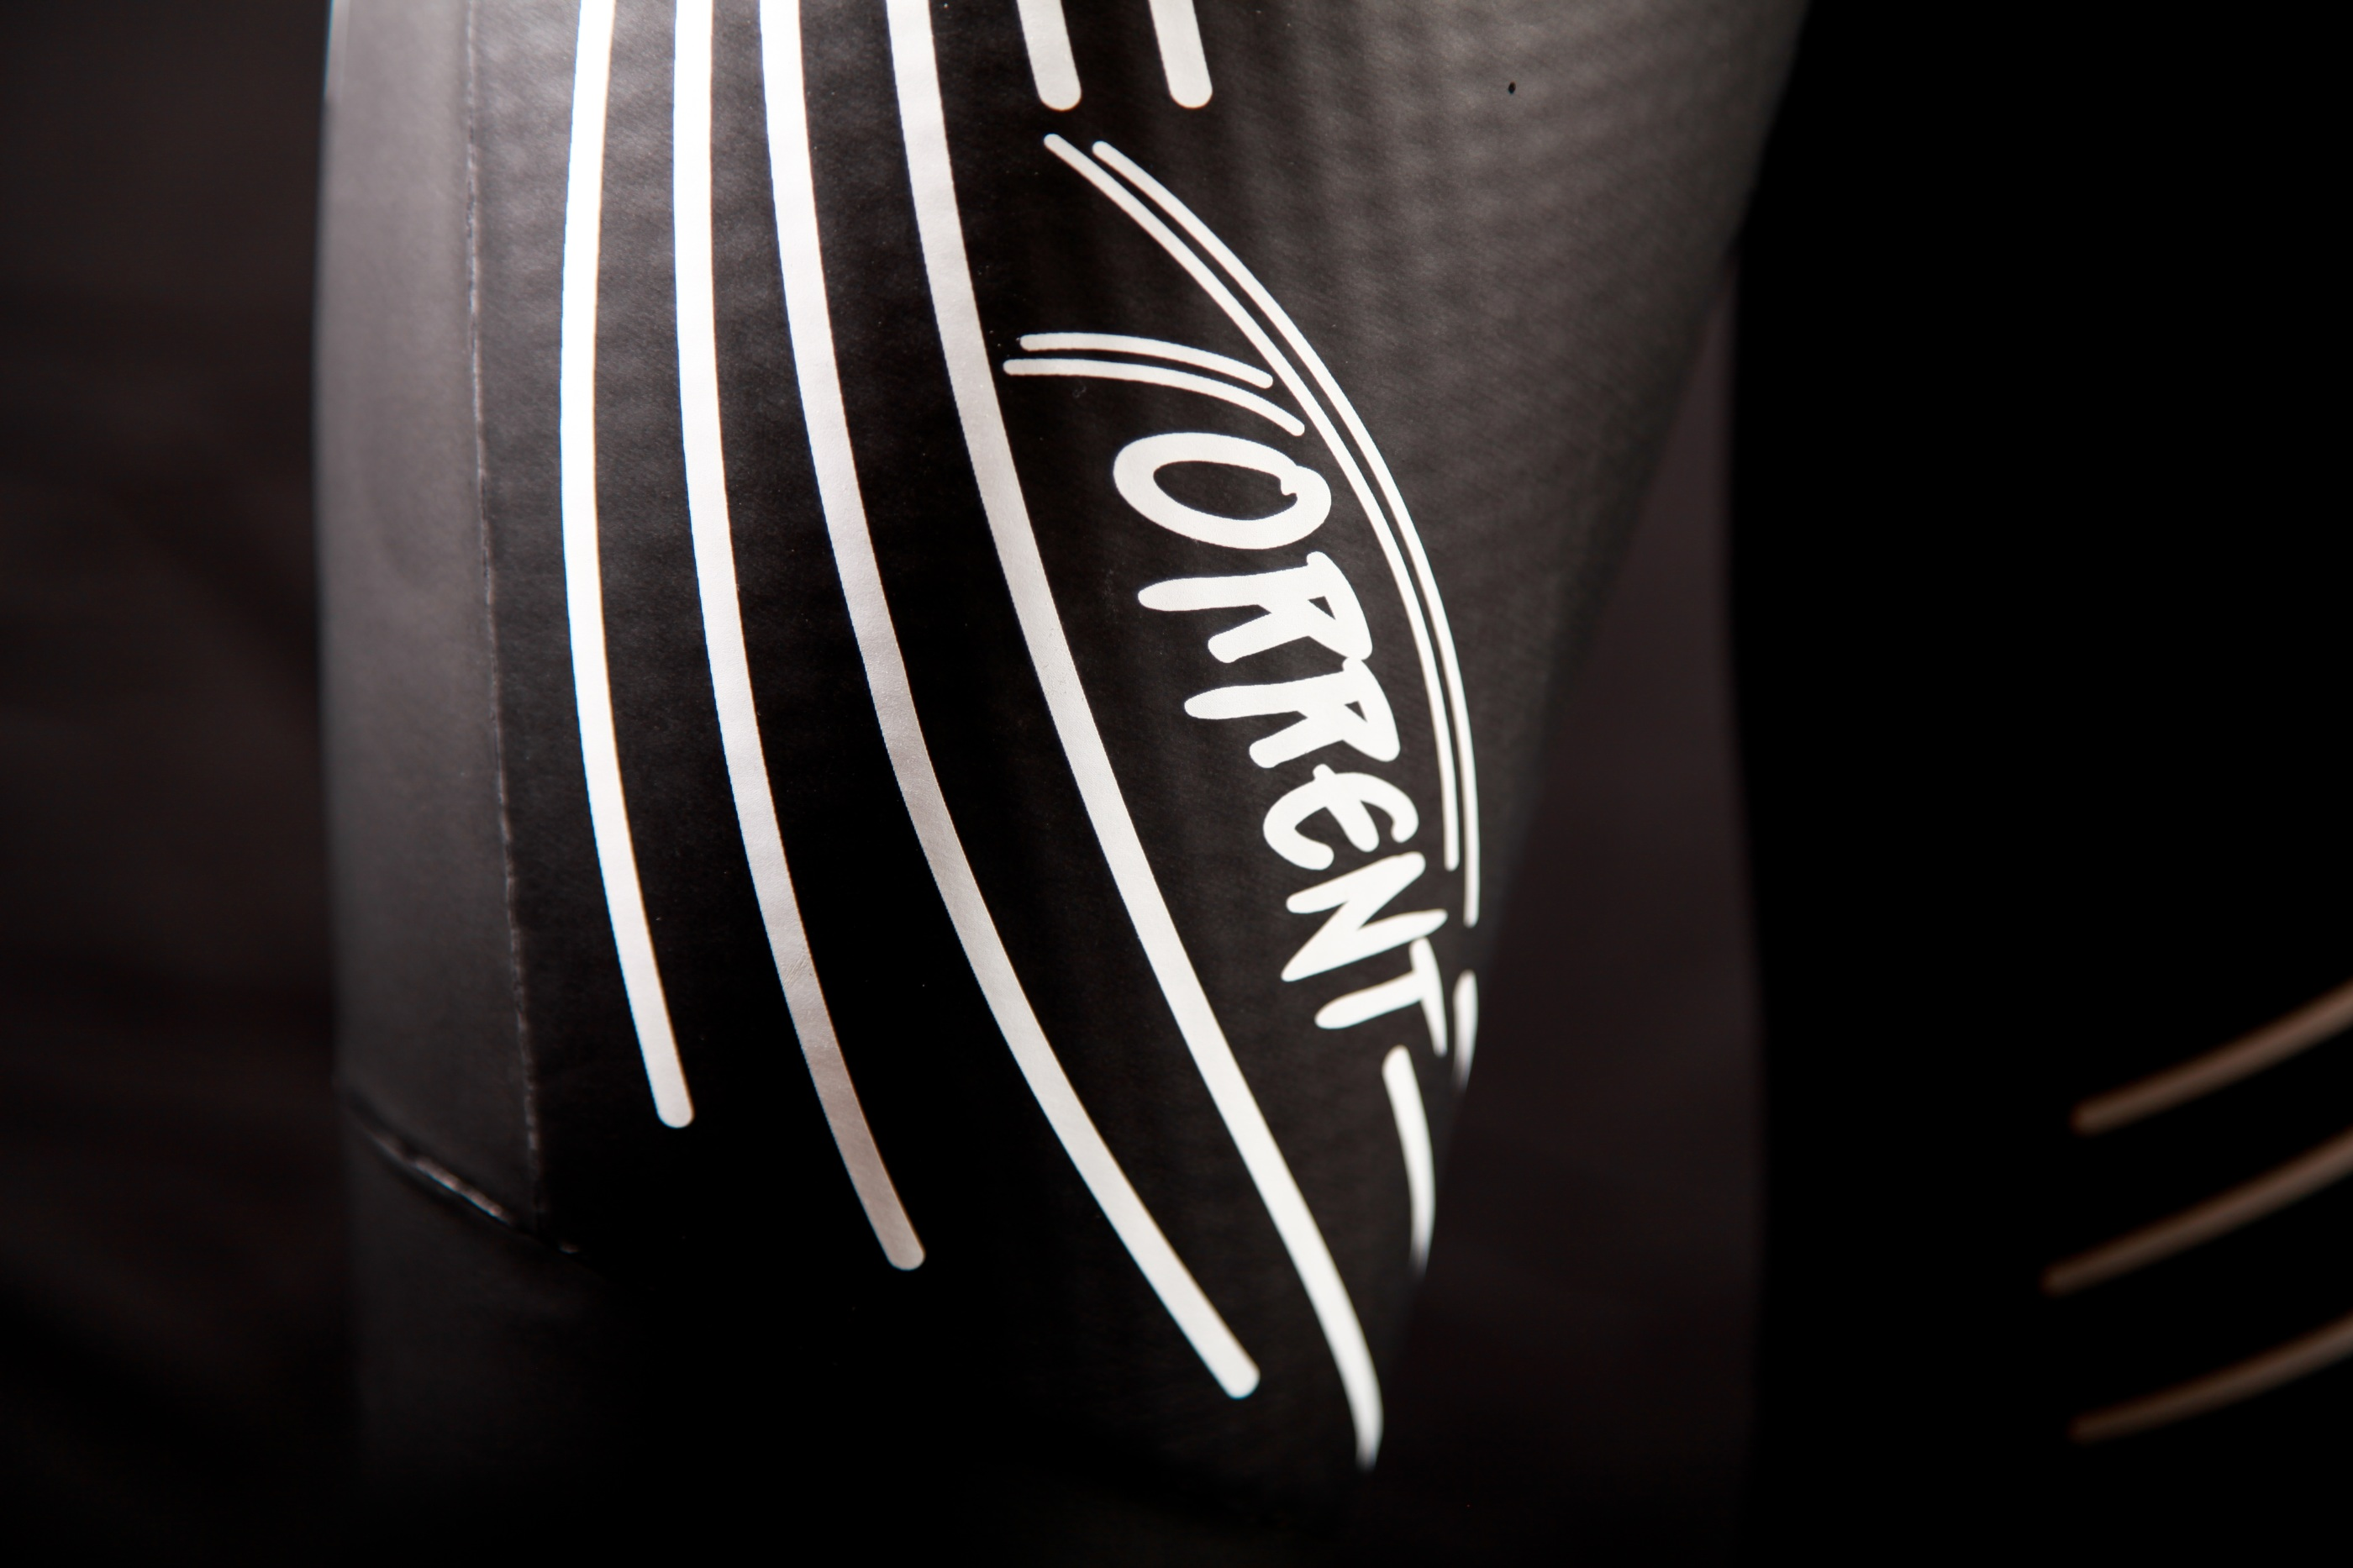 Torrent mens thigh close up